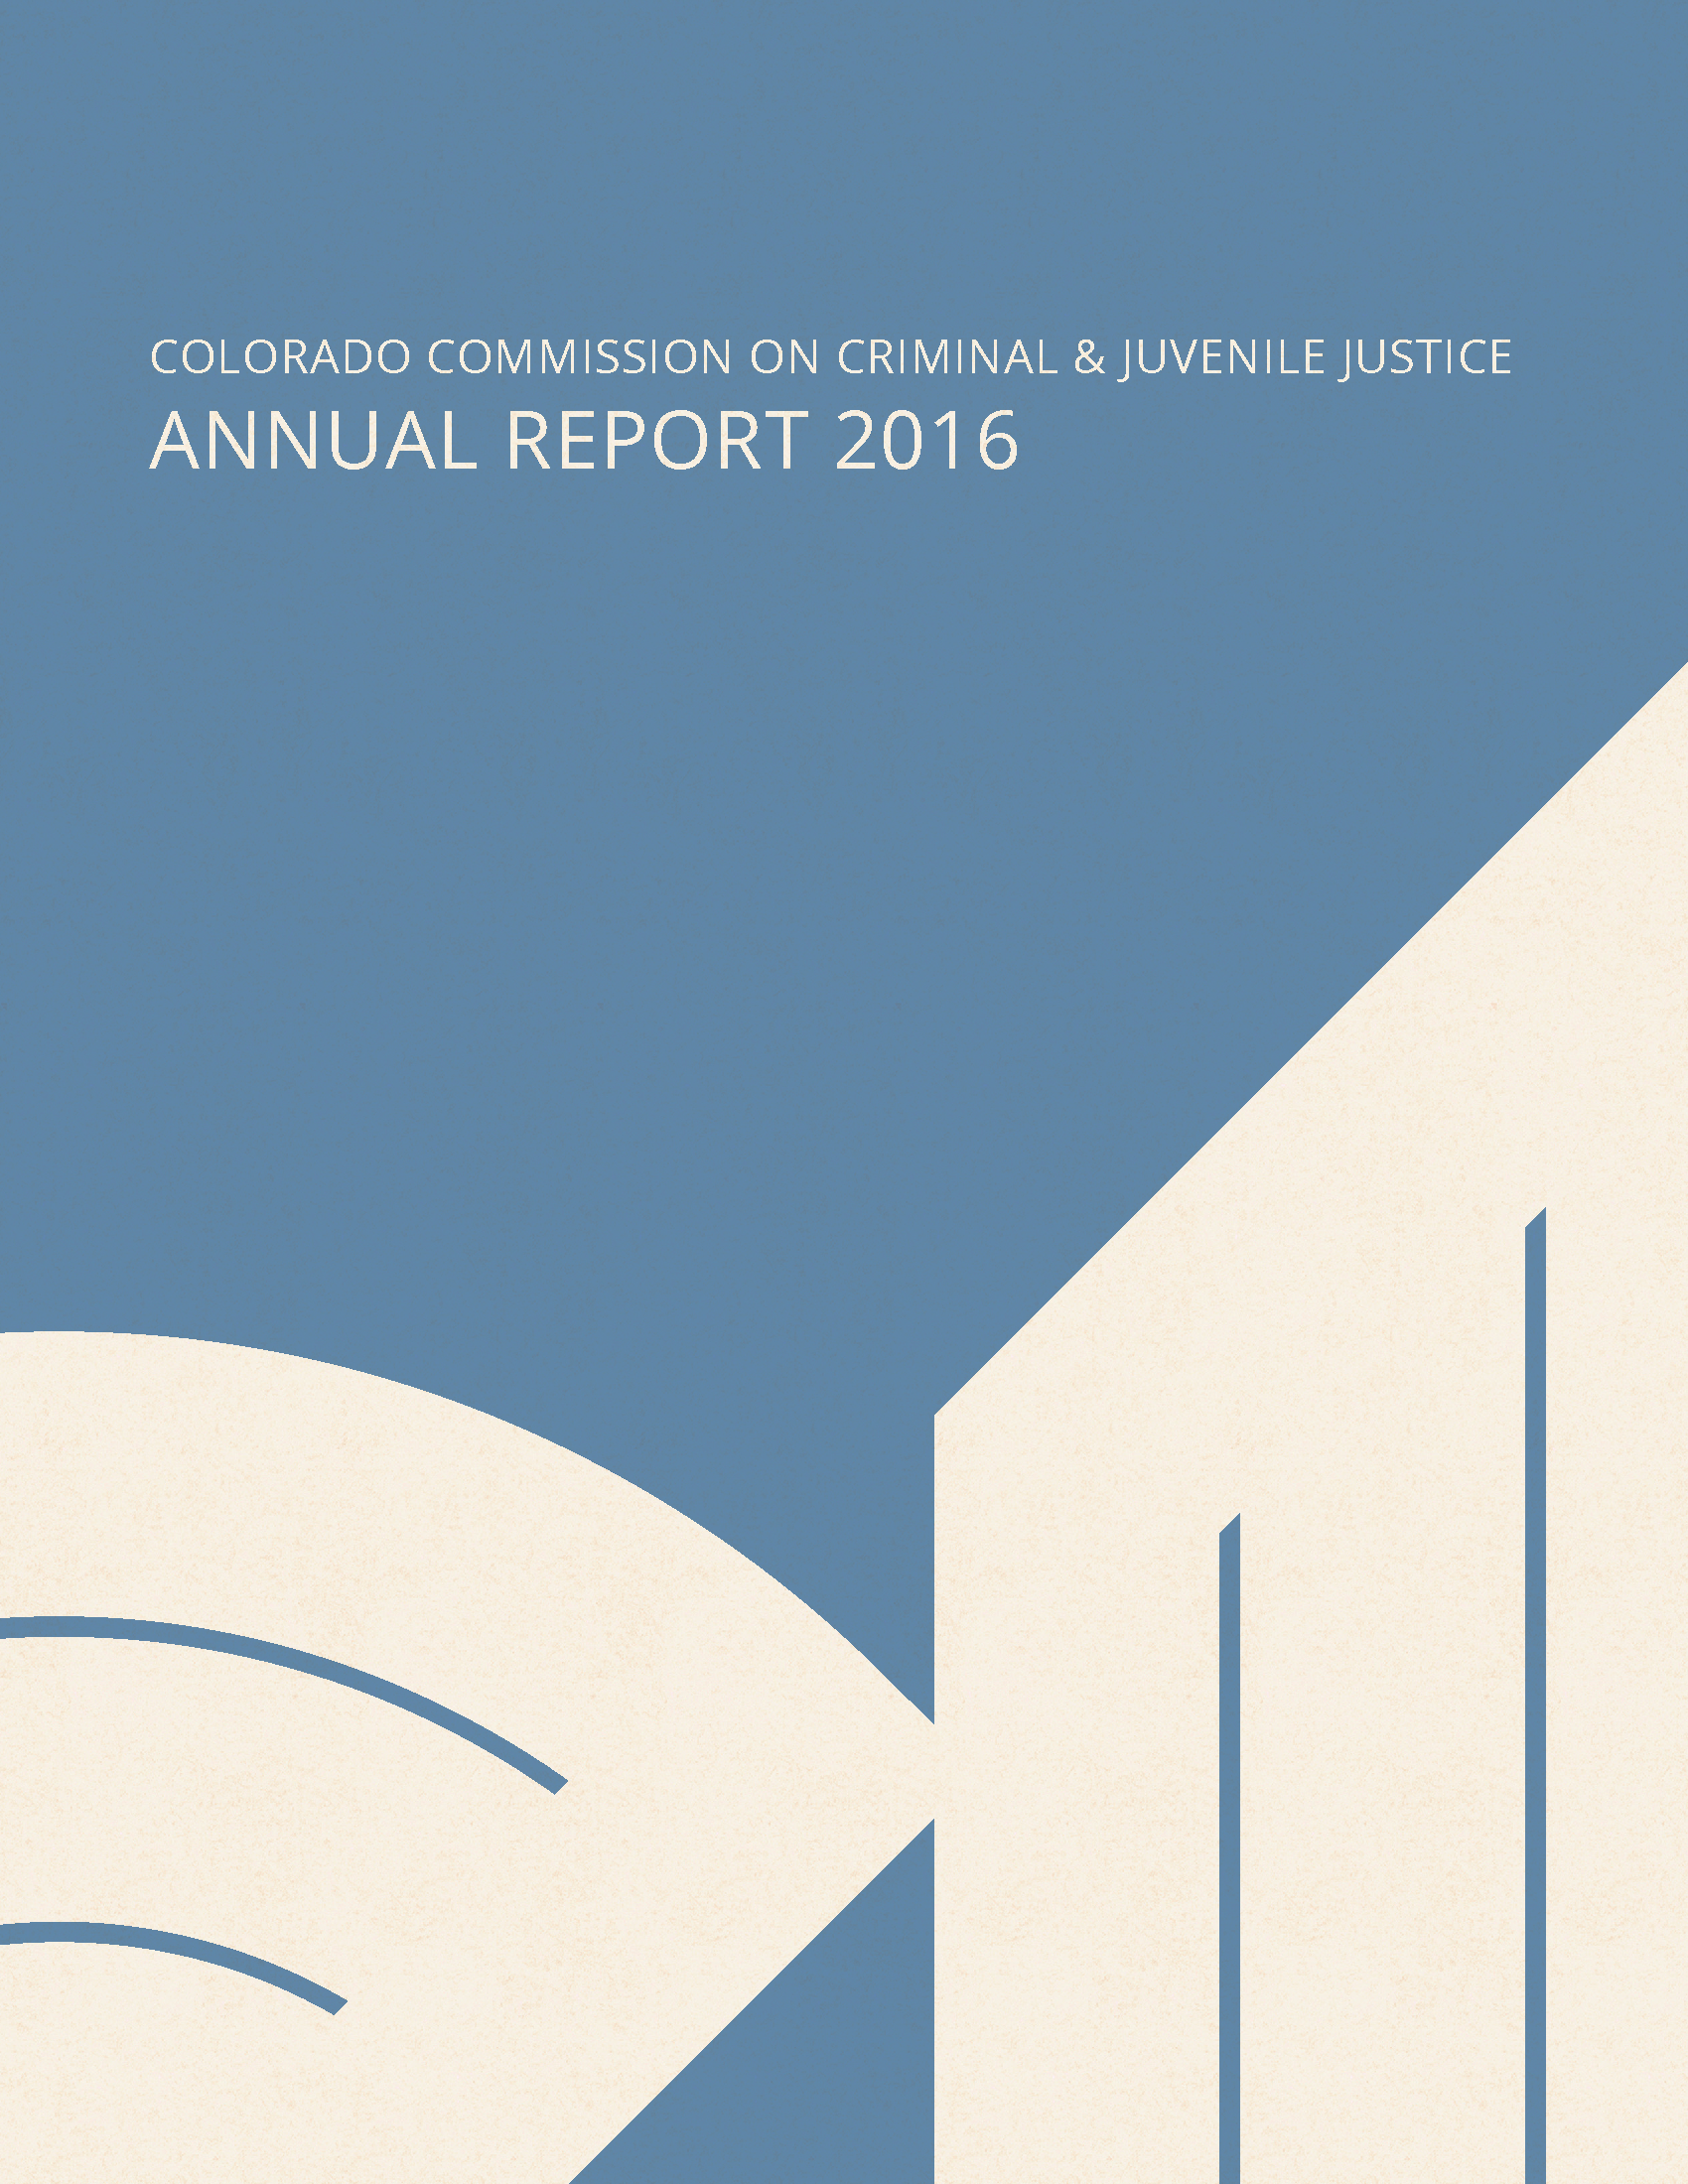 Colorado Commission on Criminal and Juvenile Justice: FY 2016 Annual Report (December 2016)